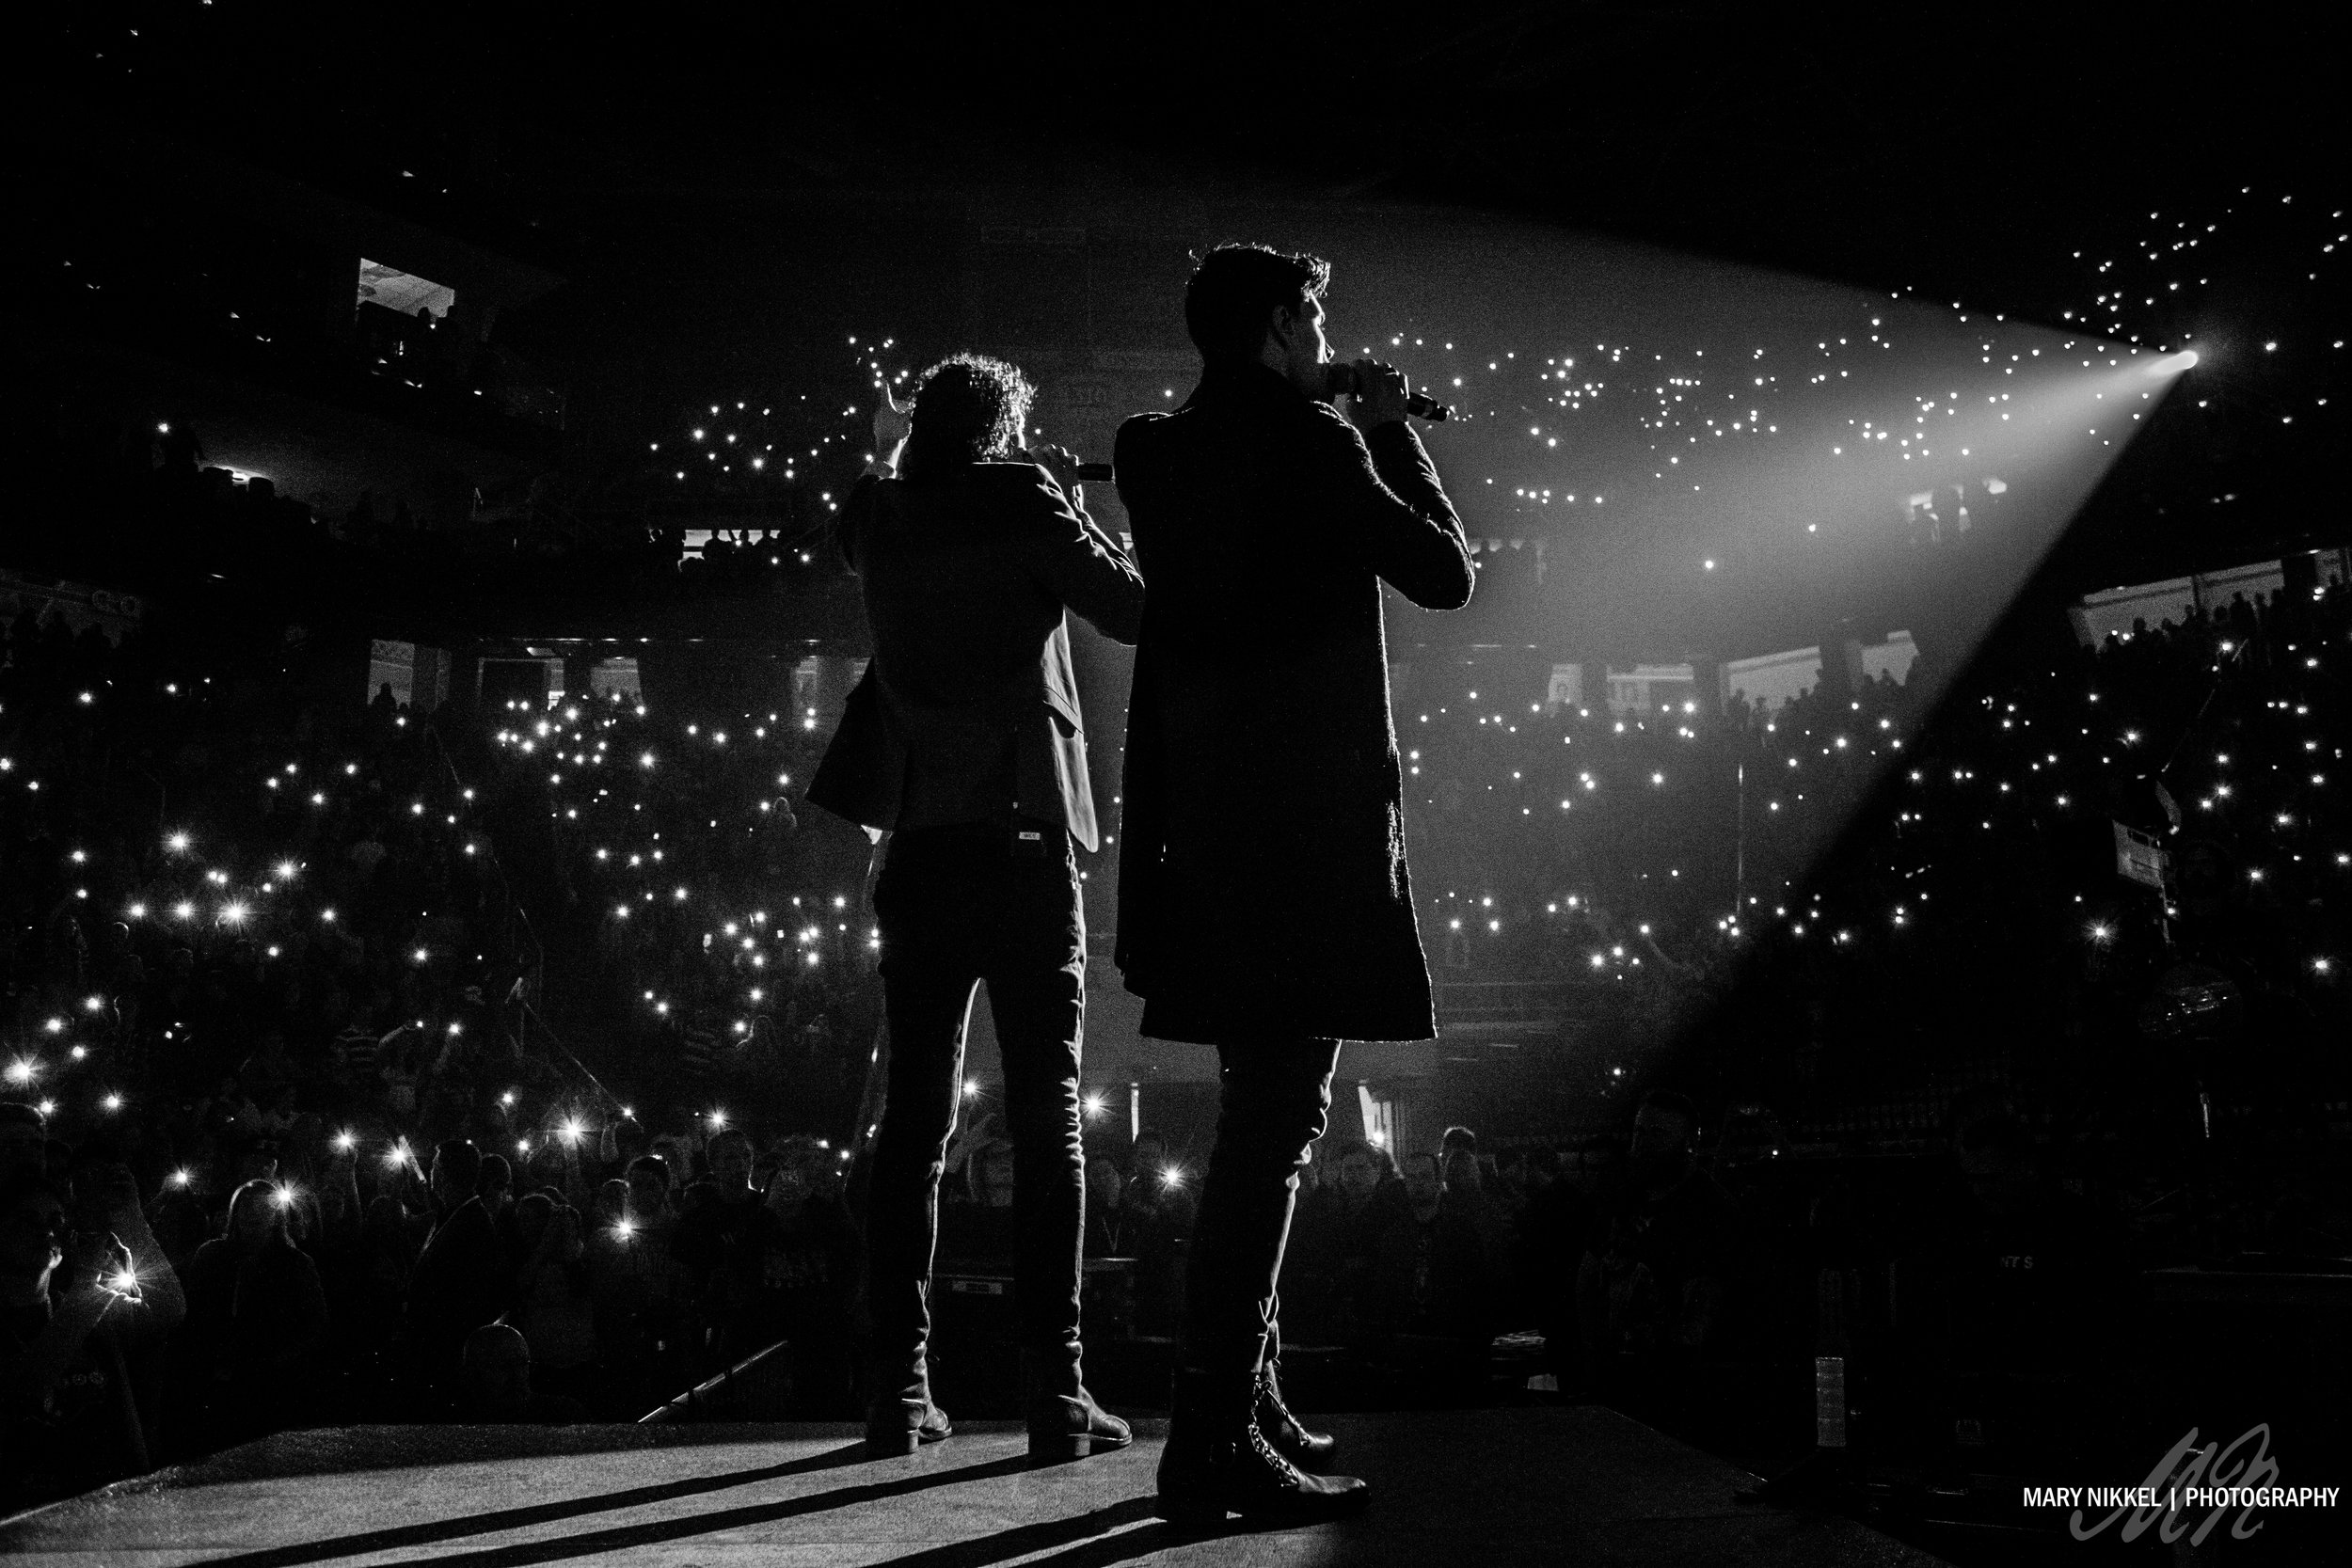 for KING & COUNTRY, photographed on Winter Jam tour 2015